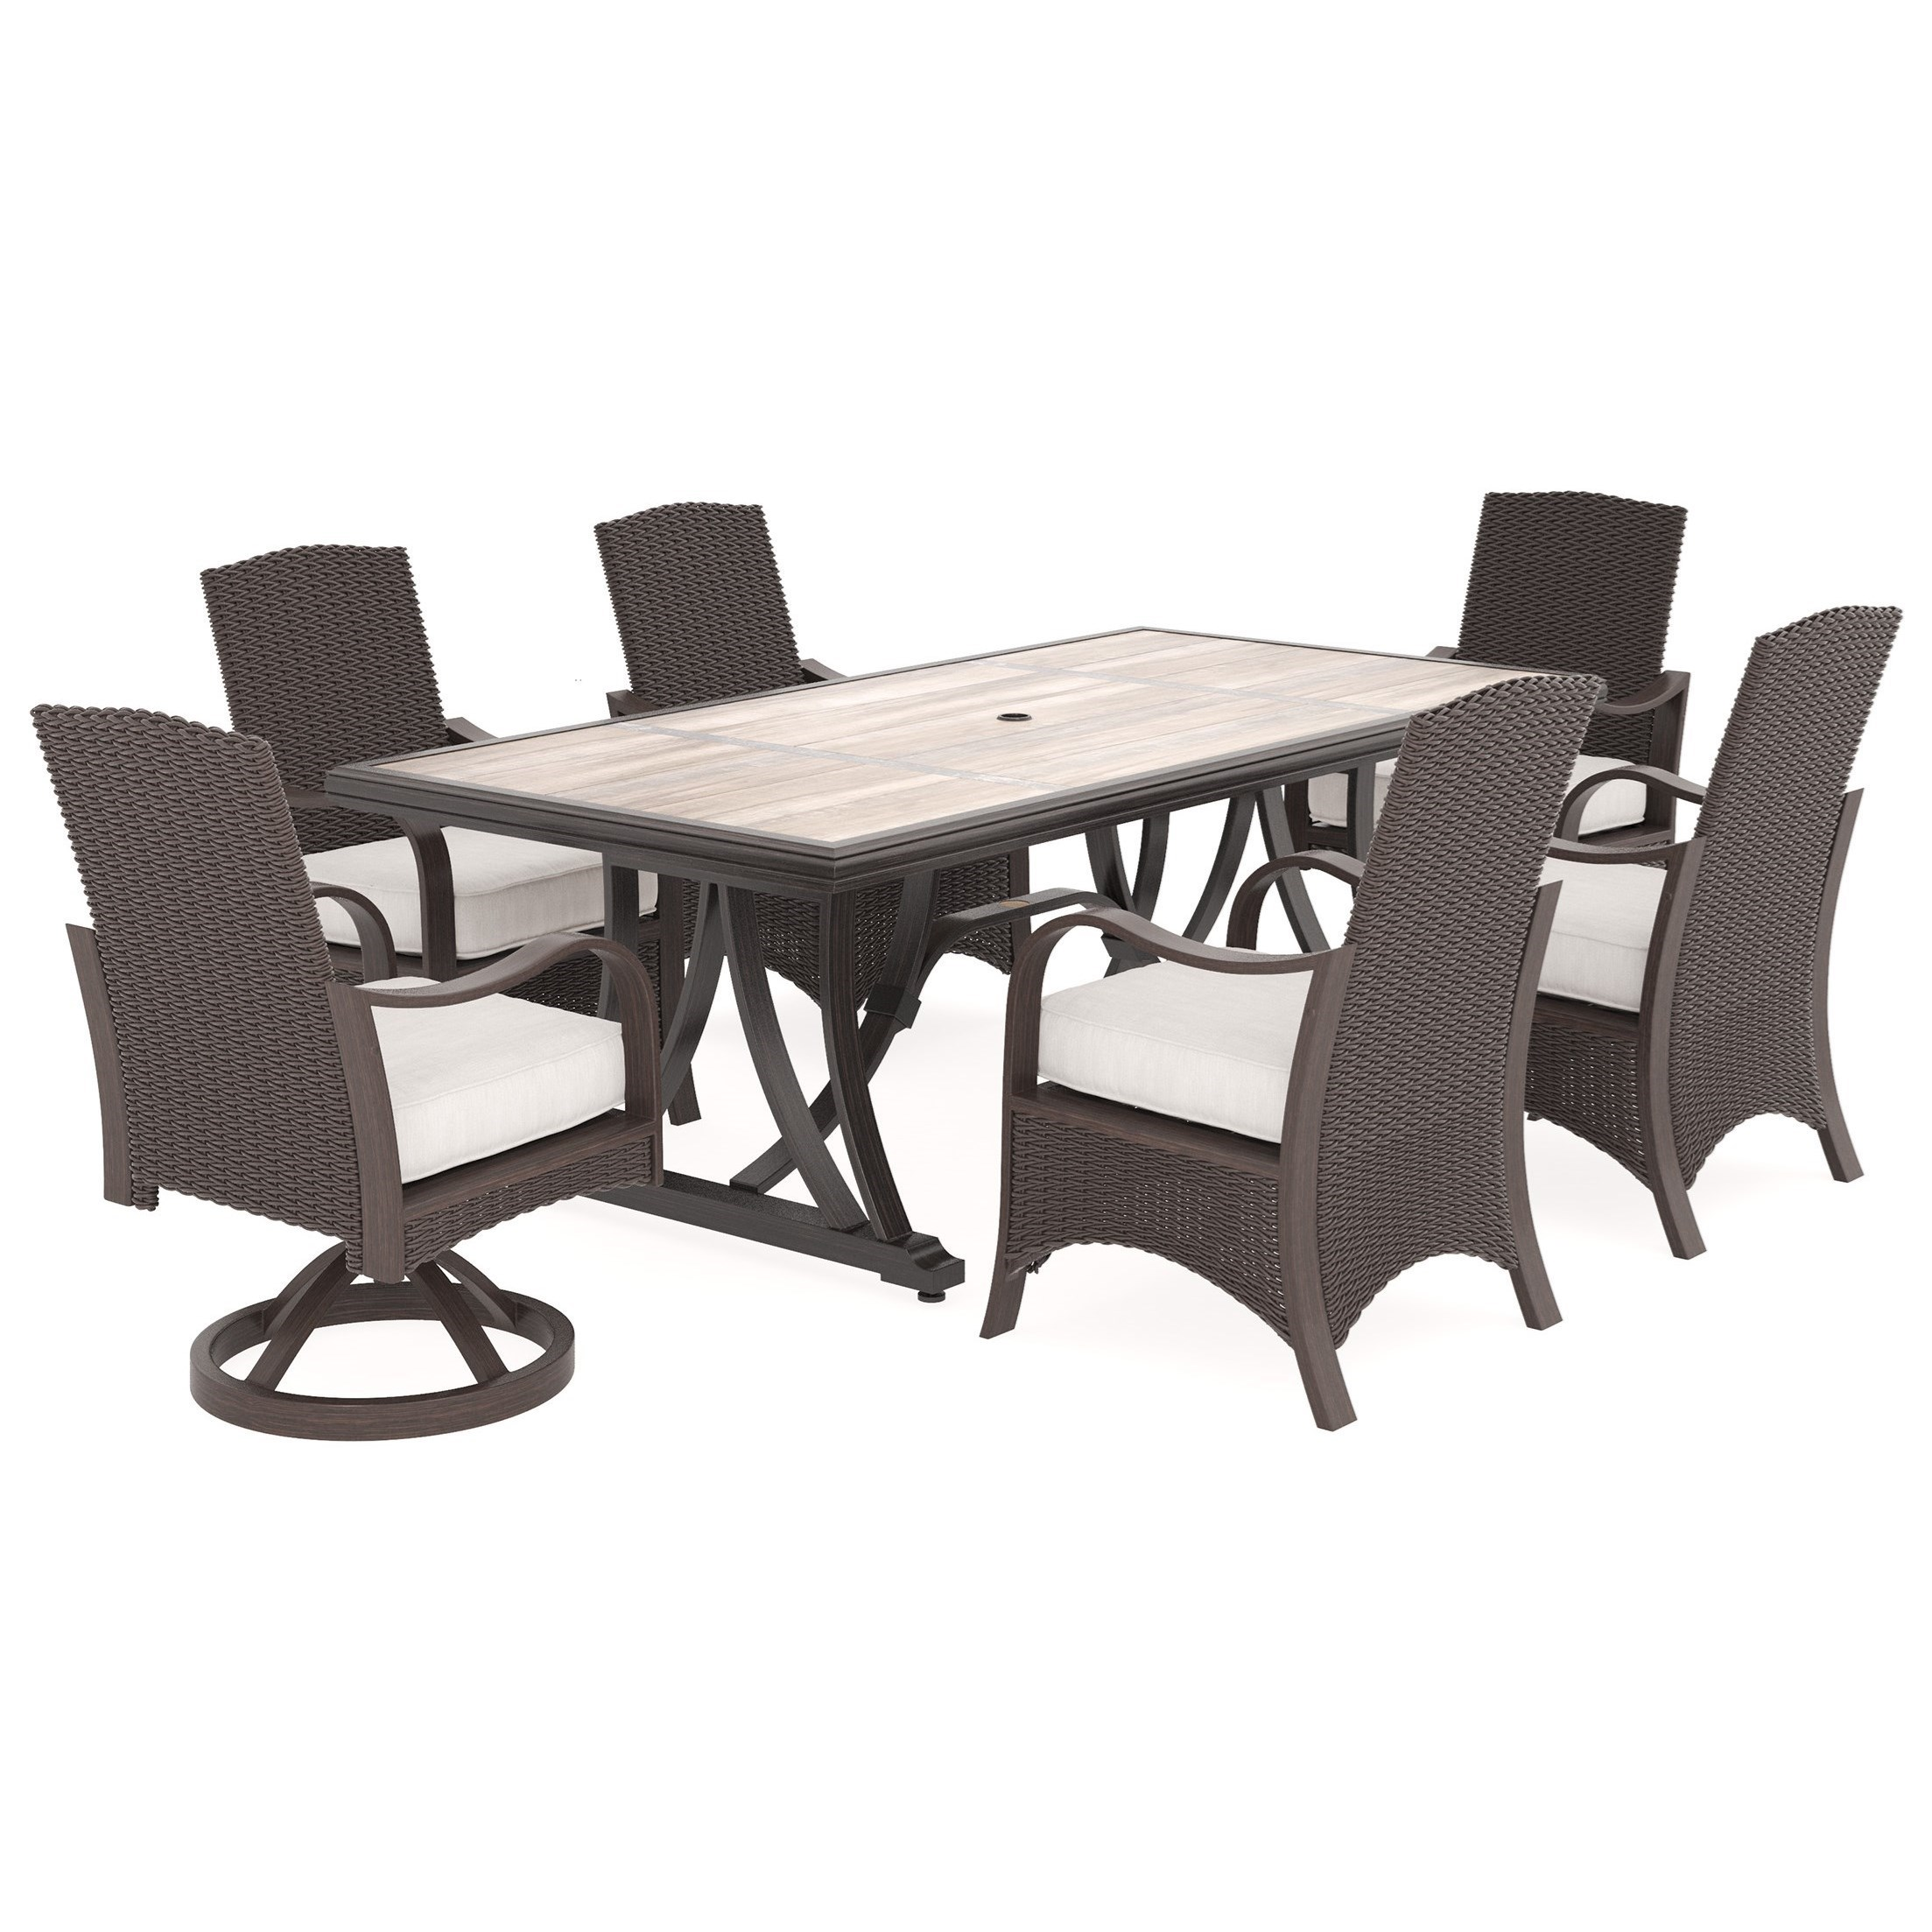 Attrayant Signature Design By Ashley Marsh Creek7 Piece Outdoor Dining Set ...